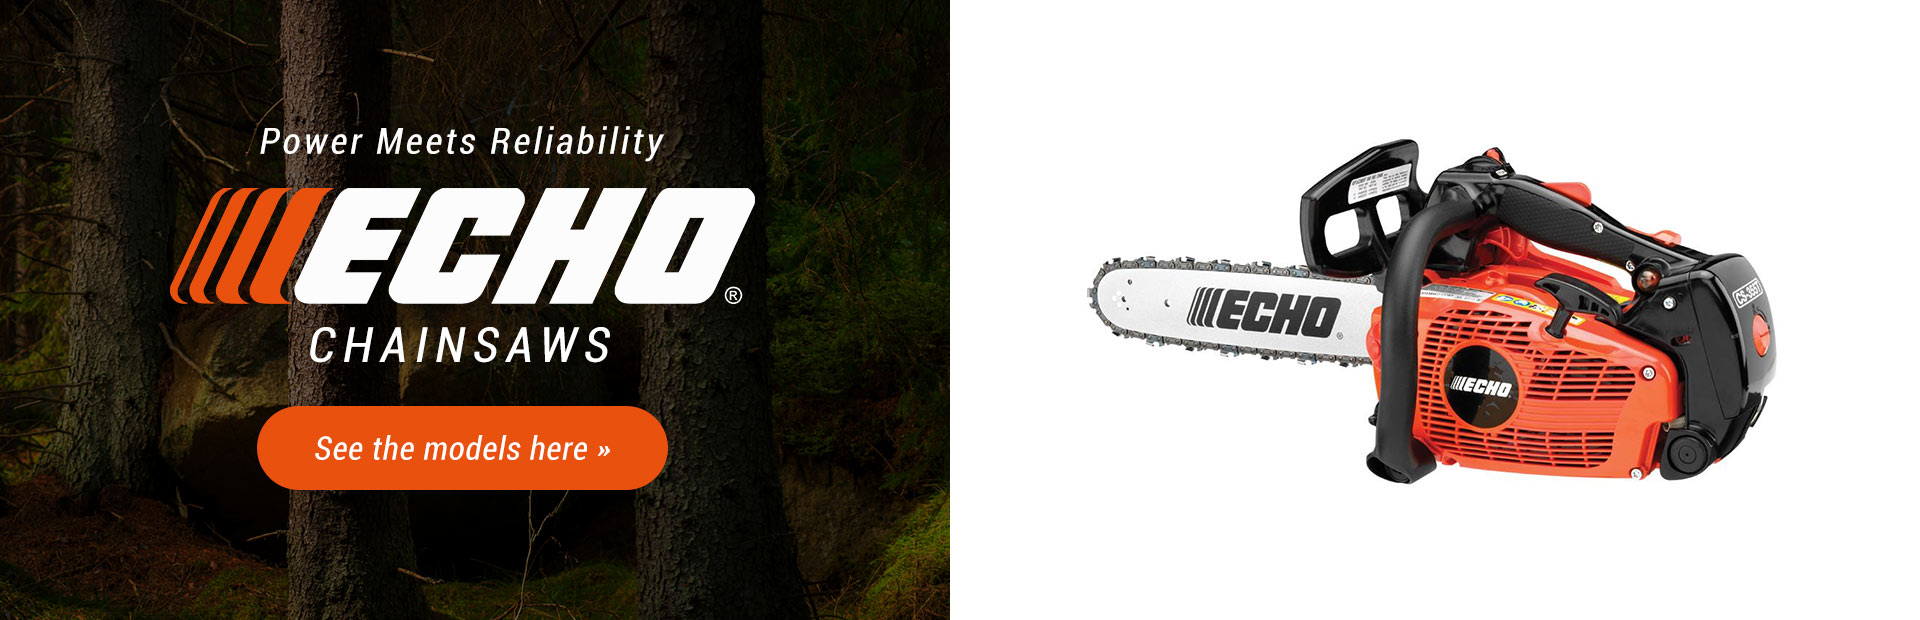 ECHO Chainsaws: Click here to see the models.